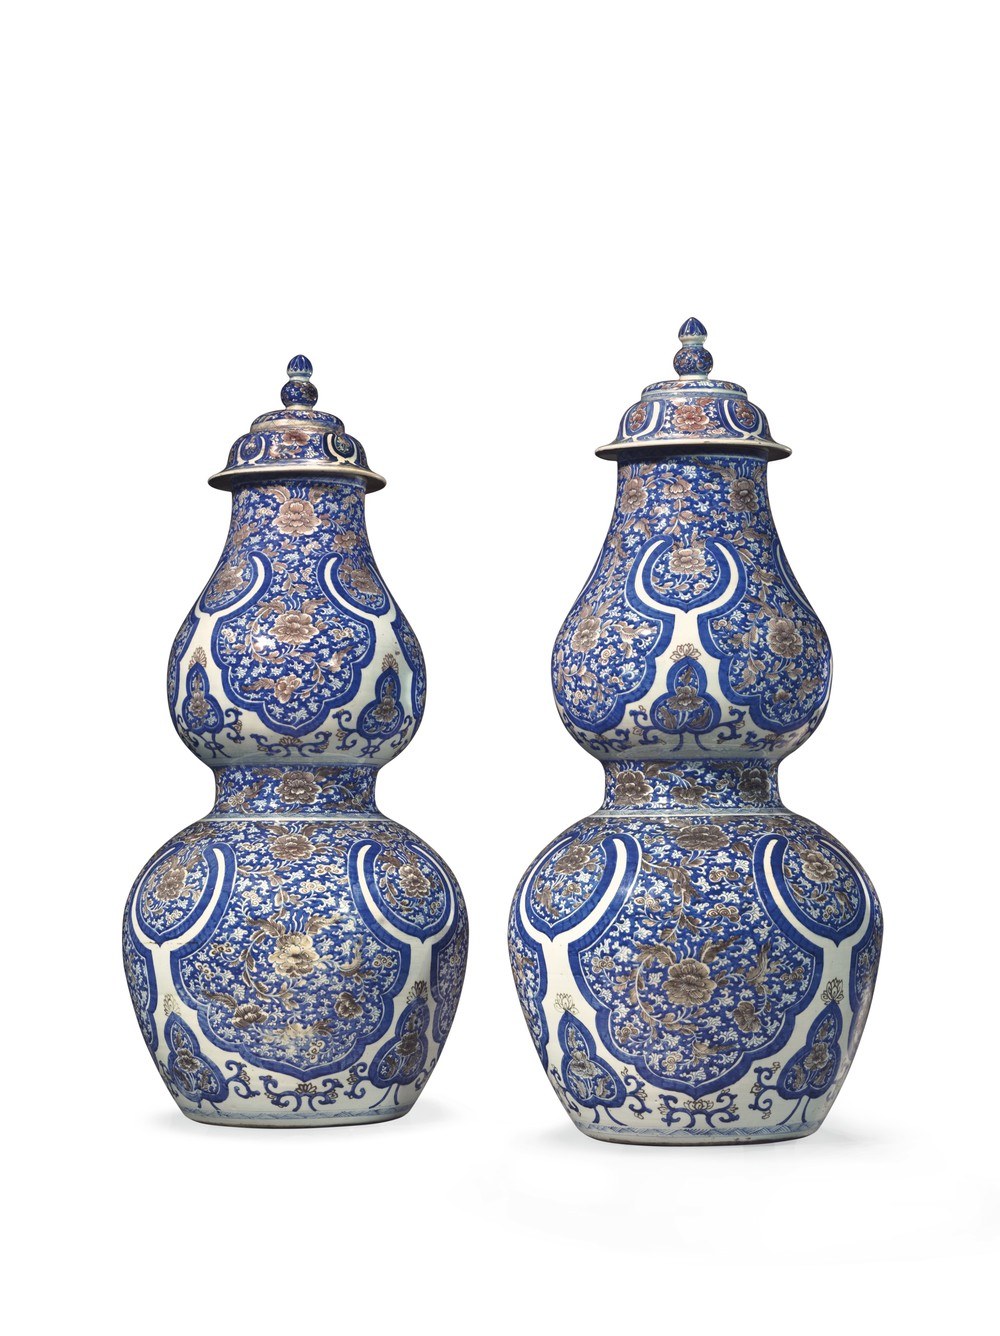 Two Kangxi Period (1662-1722) Chinese porcelain double-gourd vases with covers are impressive at 43 ¾ inches tall. They come to Christie's as part of an American family's collection.  Estimate: $200,000 to $300,000.  (PHOTO CREDIT: CHRISTIE'S IMAGES LTD. 2016)